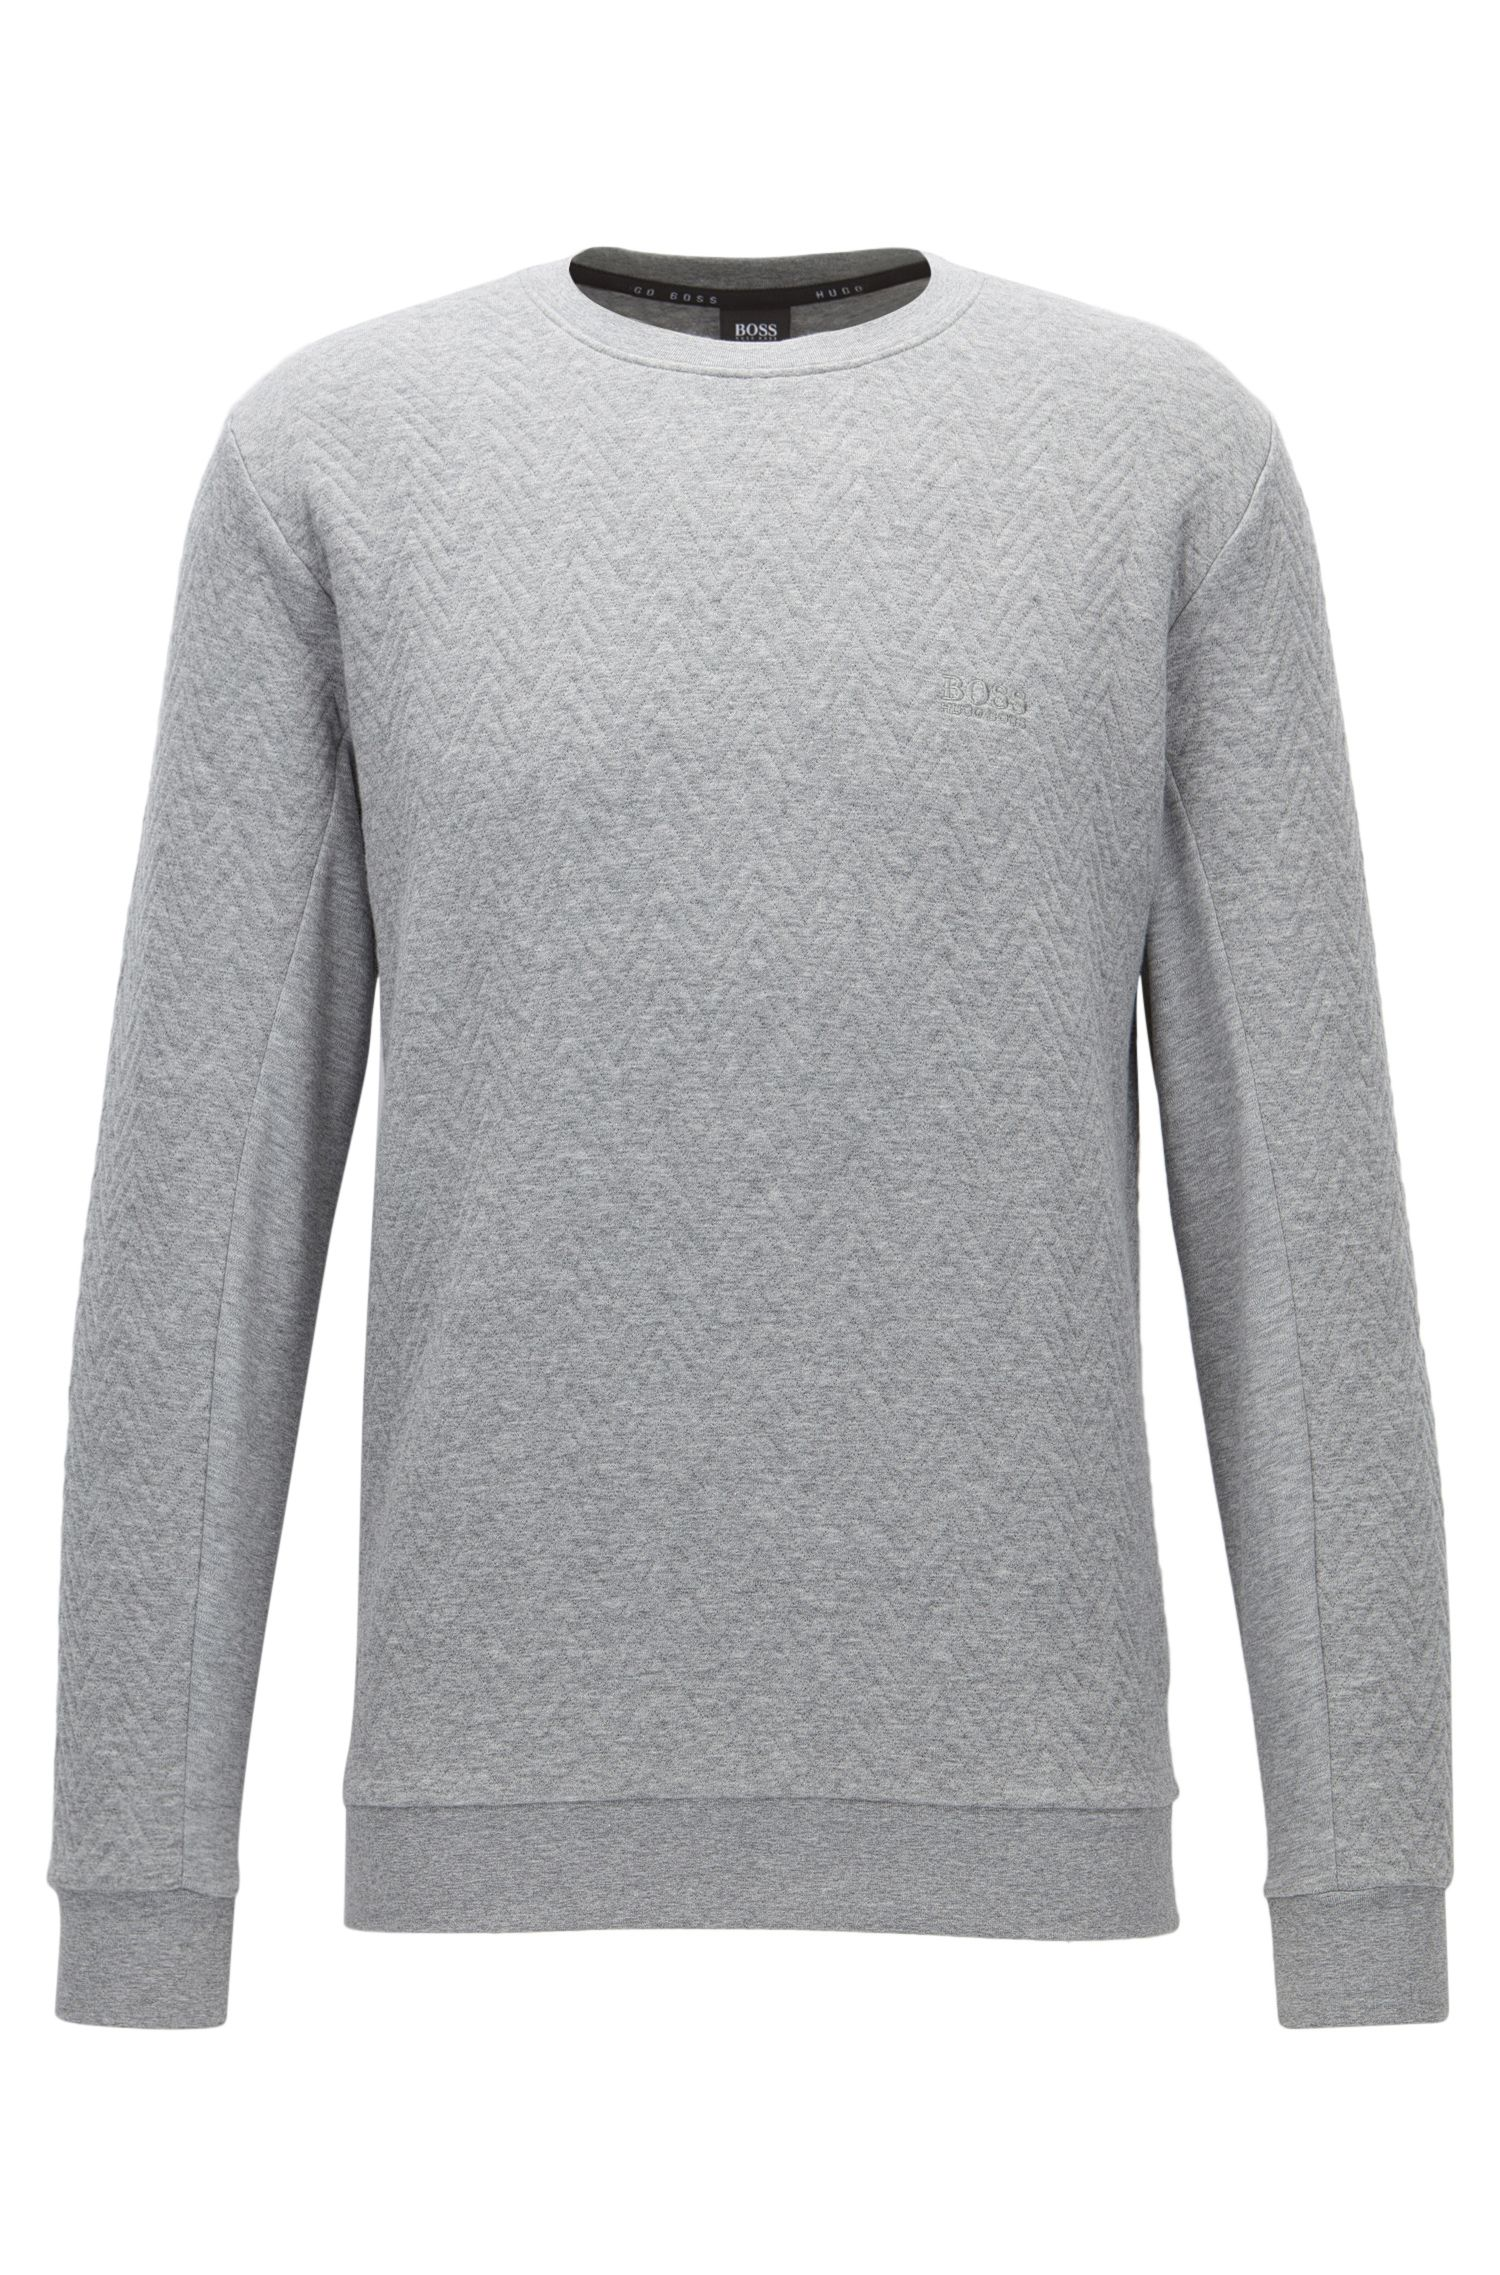 Herringbone-quilted crew-neck sweatshirt in cotton